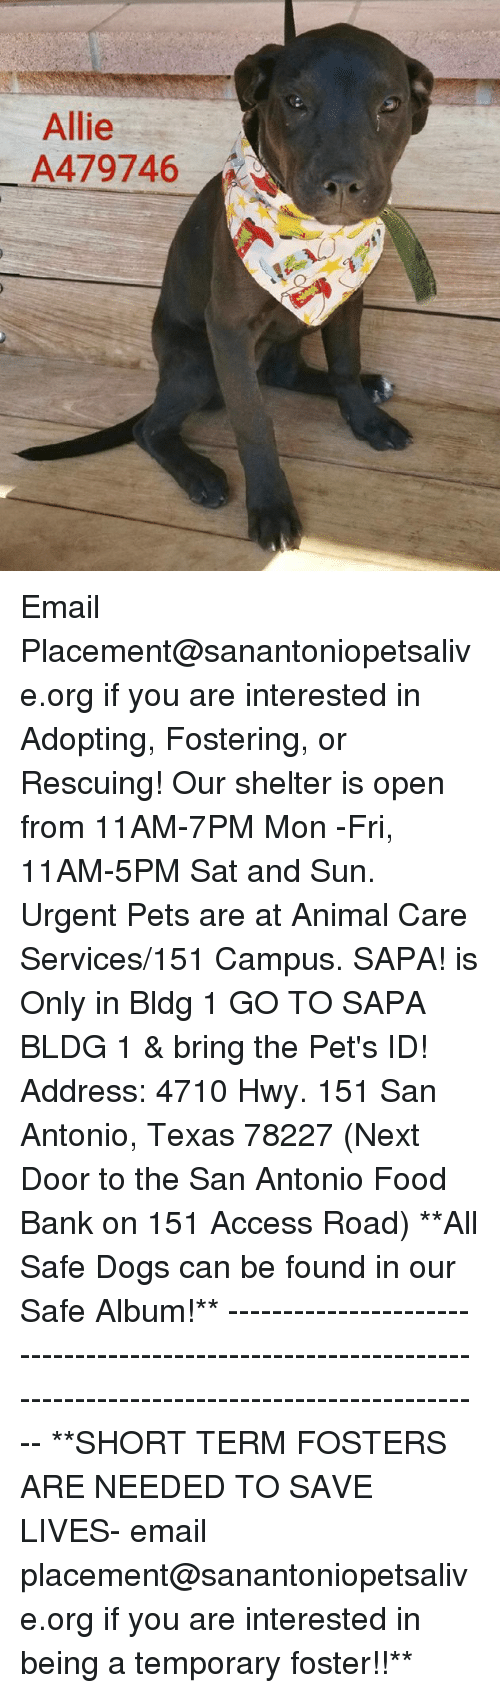 Dogs, Food, and Memes: Allie  A479746 Email Placement@sanantoniopetsalive.org if you are interested in Adopting, Fostering, or Rescuing!  Our shelter is open from 11AM-7PM Mon -Fri, 11AM-5PM Sat and Sun.  Urgent Pets are at Animal Care Services/151 Campus. SAPA! is Only in Bldg 1 GO TO SAPA BLDG 1 & bring the Pet's ID! Address: 4710 Hwy. 151 San Antonio, Texas 78227 (Next Door to the San Antonio Food Bank on 151 Access Road)  **All Safe Dogs can be found in our Safe Album!** ---------------------------------------------------------------------------------------------------------- **SHORT TERM FOSTERS ARE NEEDED TO SAVE LIVES- email placement@sanantoniopetsalive.org if you are interested in being a temporary foster!!**